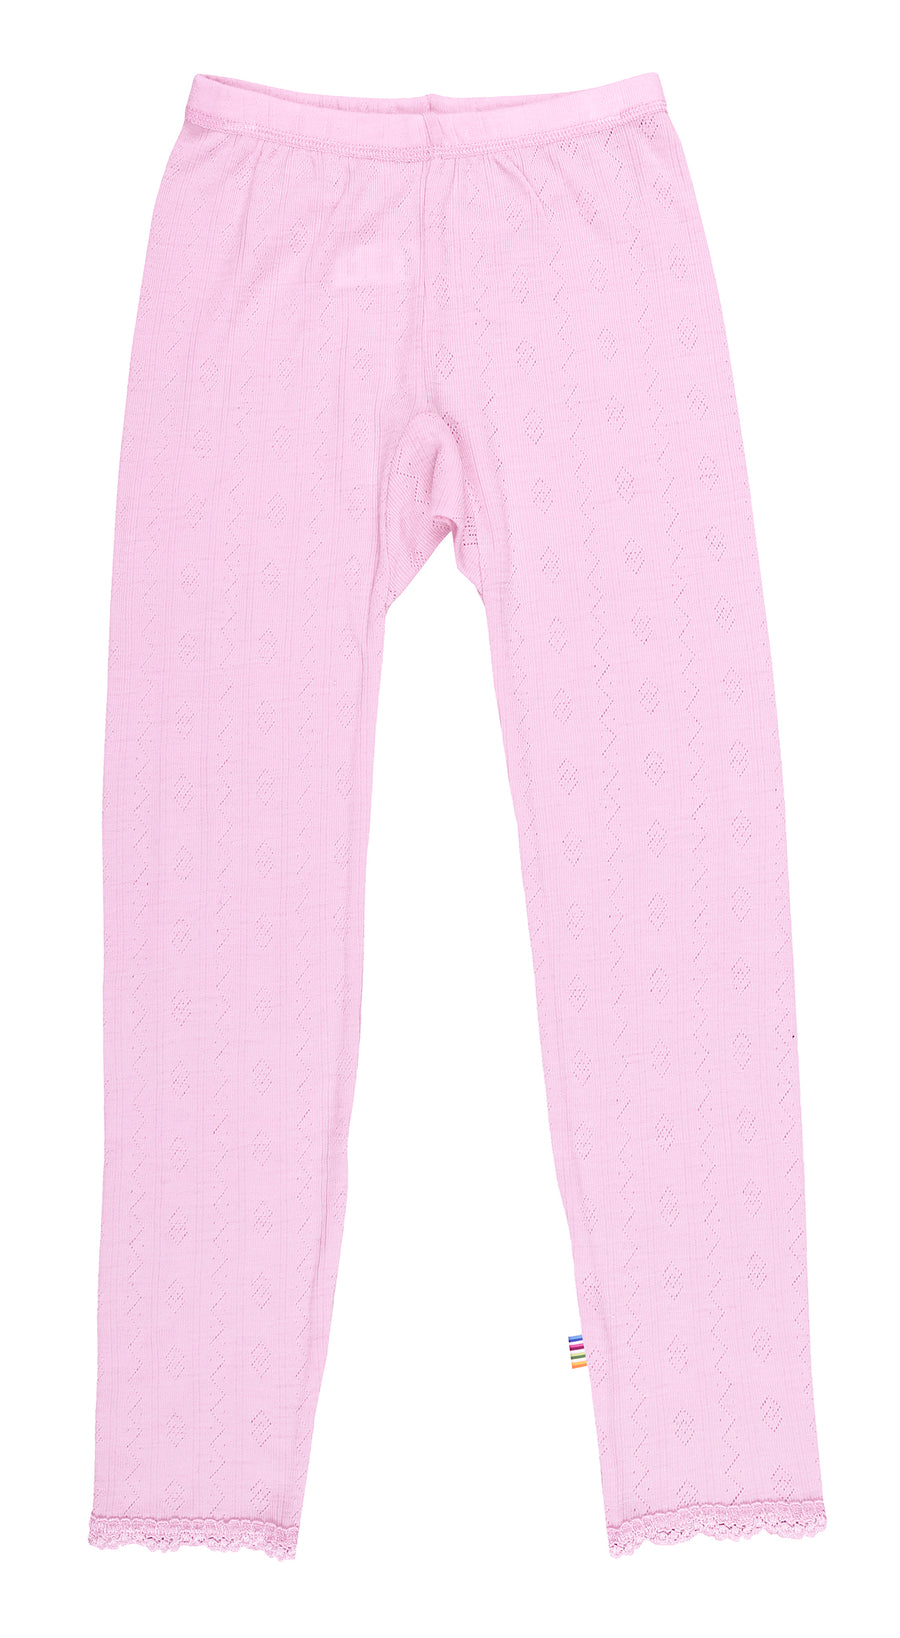 JOHA - Wool/Silk Leggings - Pale Pink